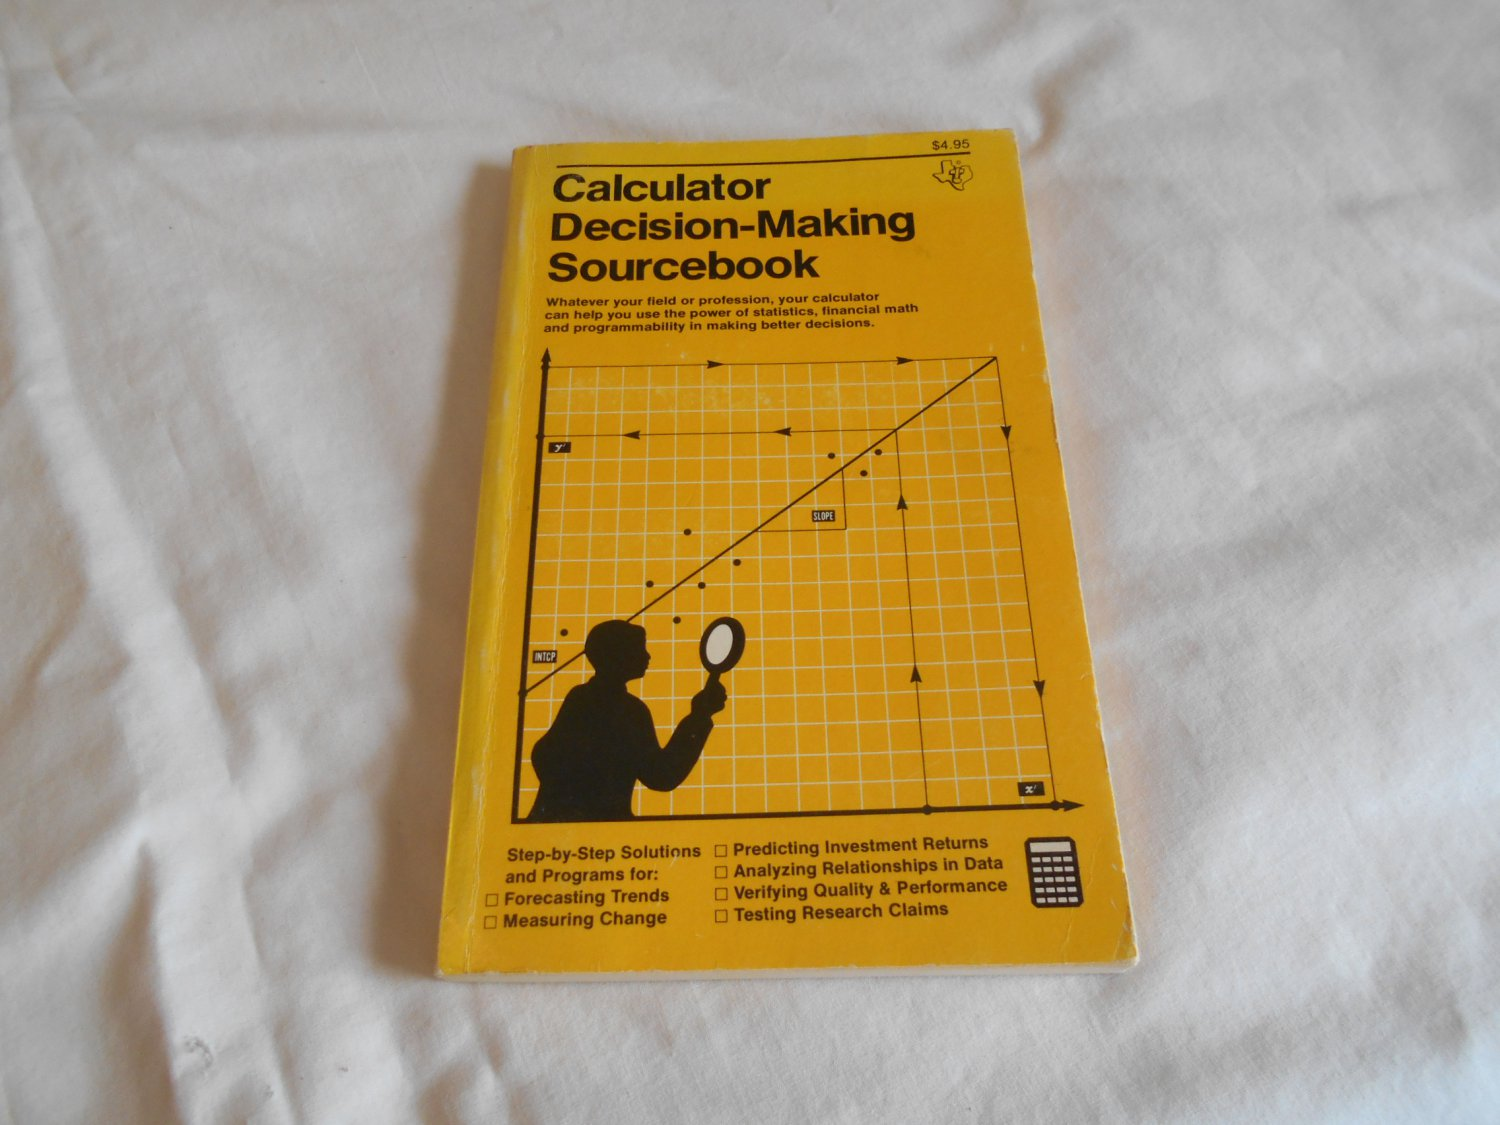 Calculator Decision Making Sourcebook by Texas Instruments Incorporated (1977) (B35)